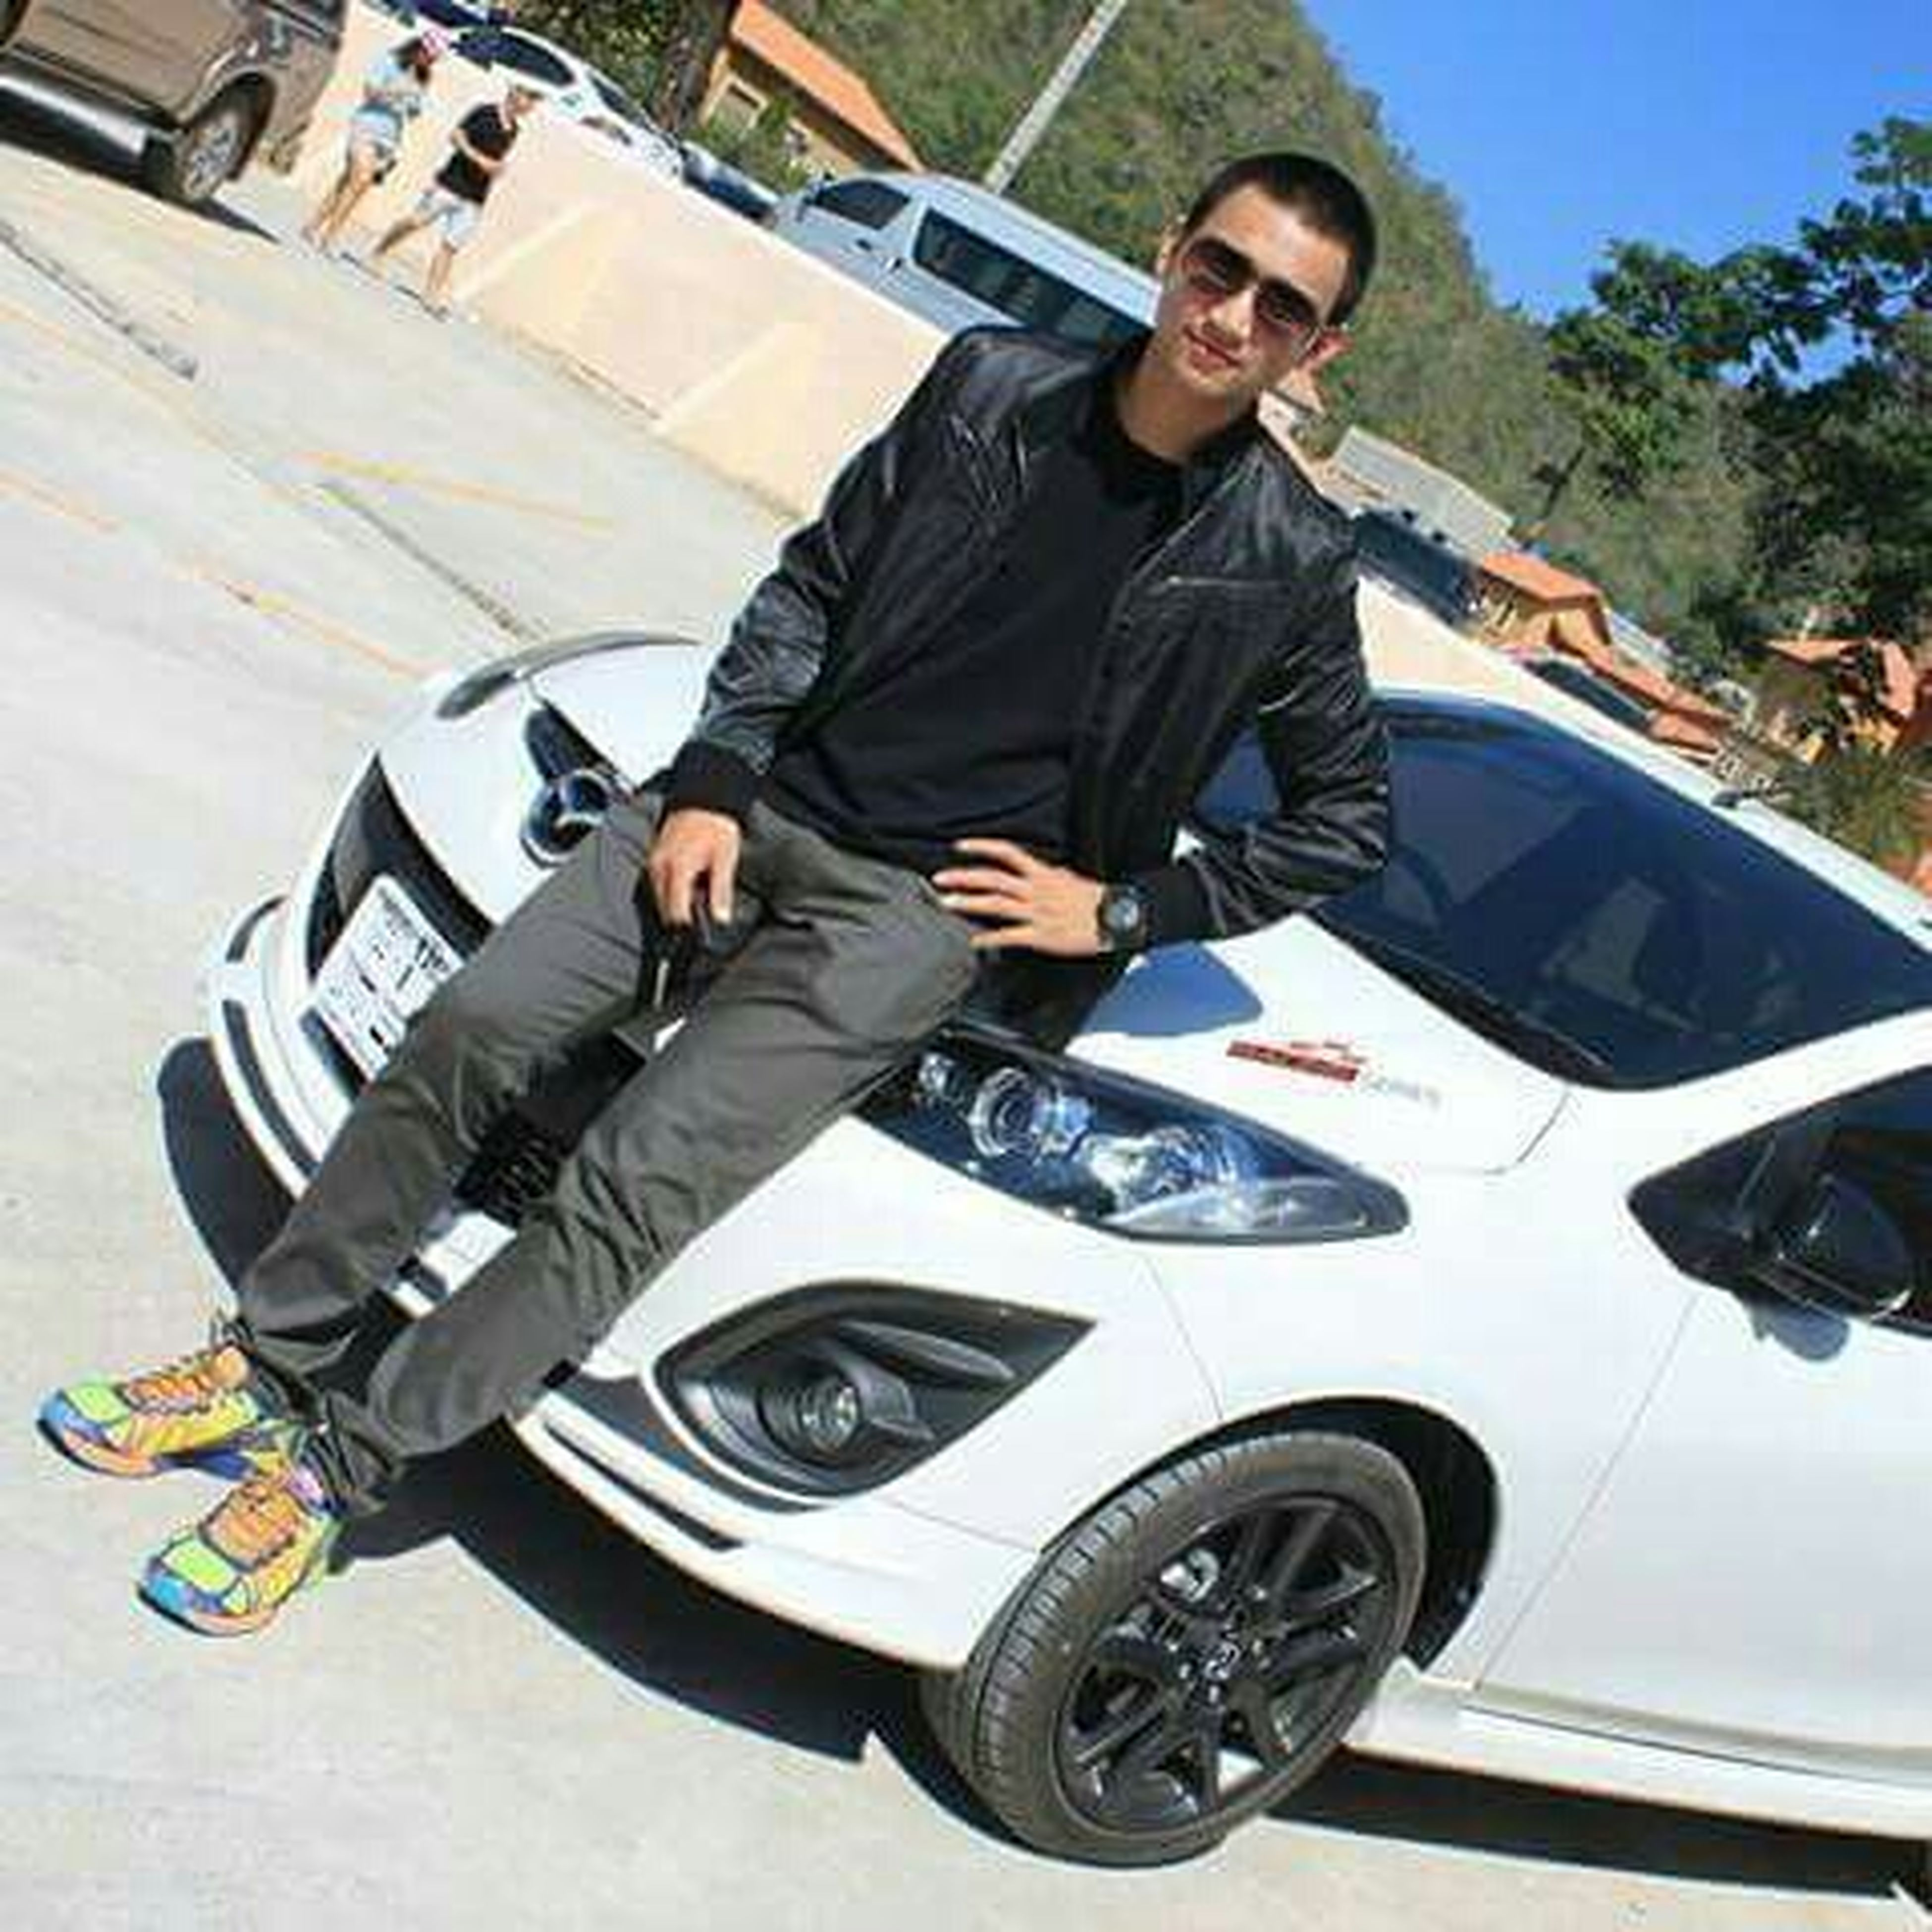 lifestyles, young adult, casual clothing, leisure activity, transportation, person, mode of transport, land vehicle, young men, front view, sunglasses, looking at camera, full length, car, portrait, sitting, smiling